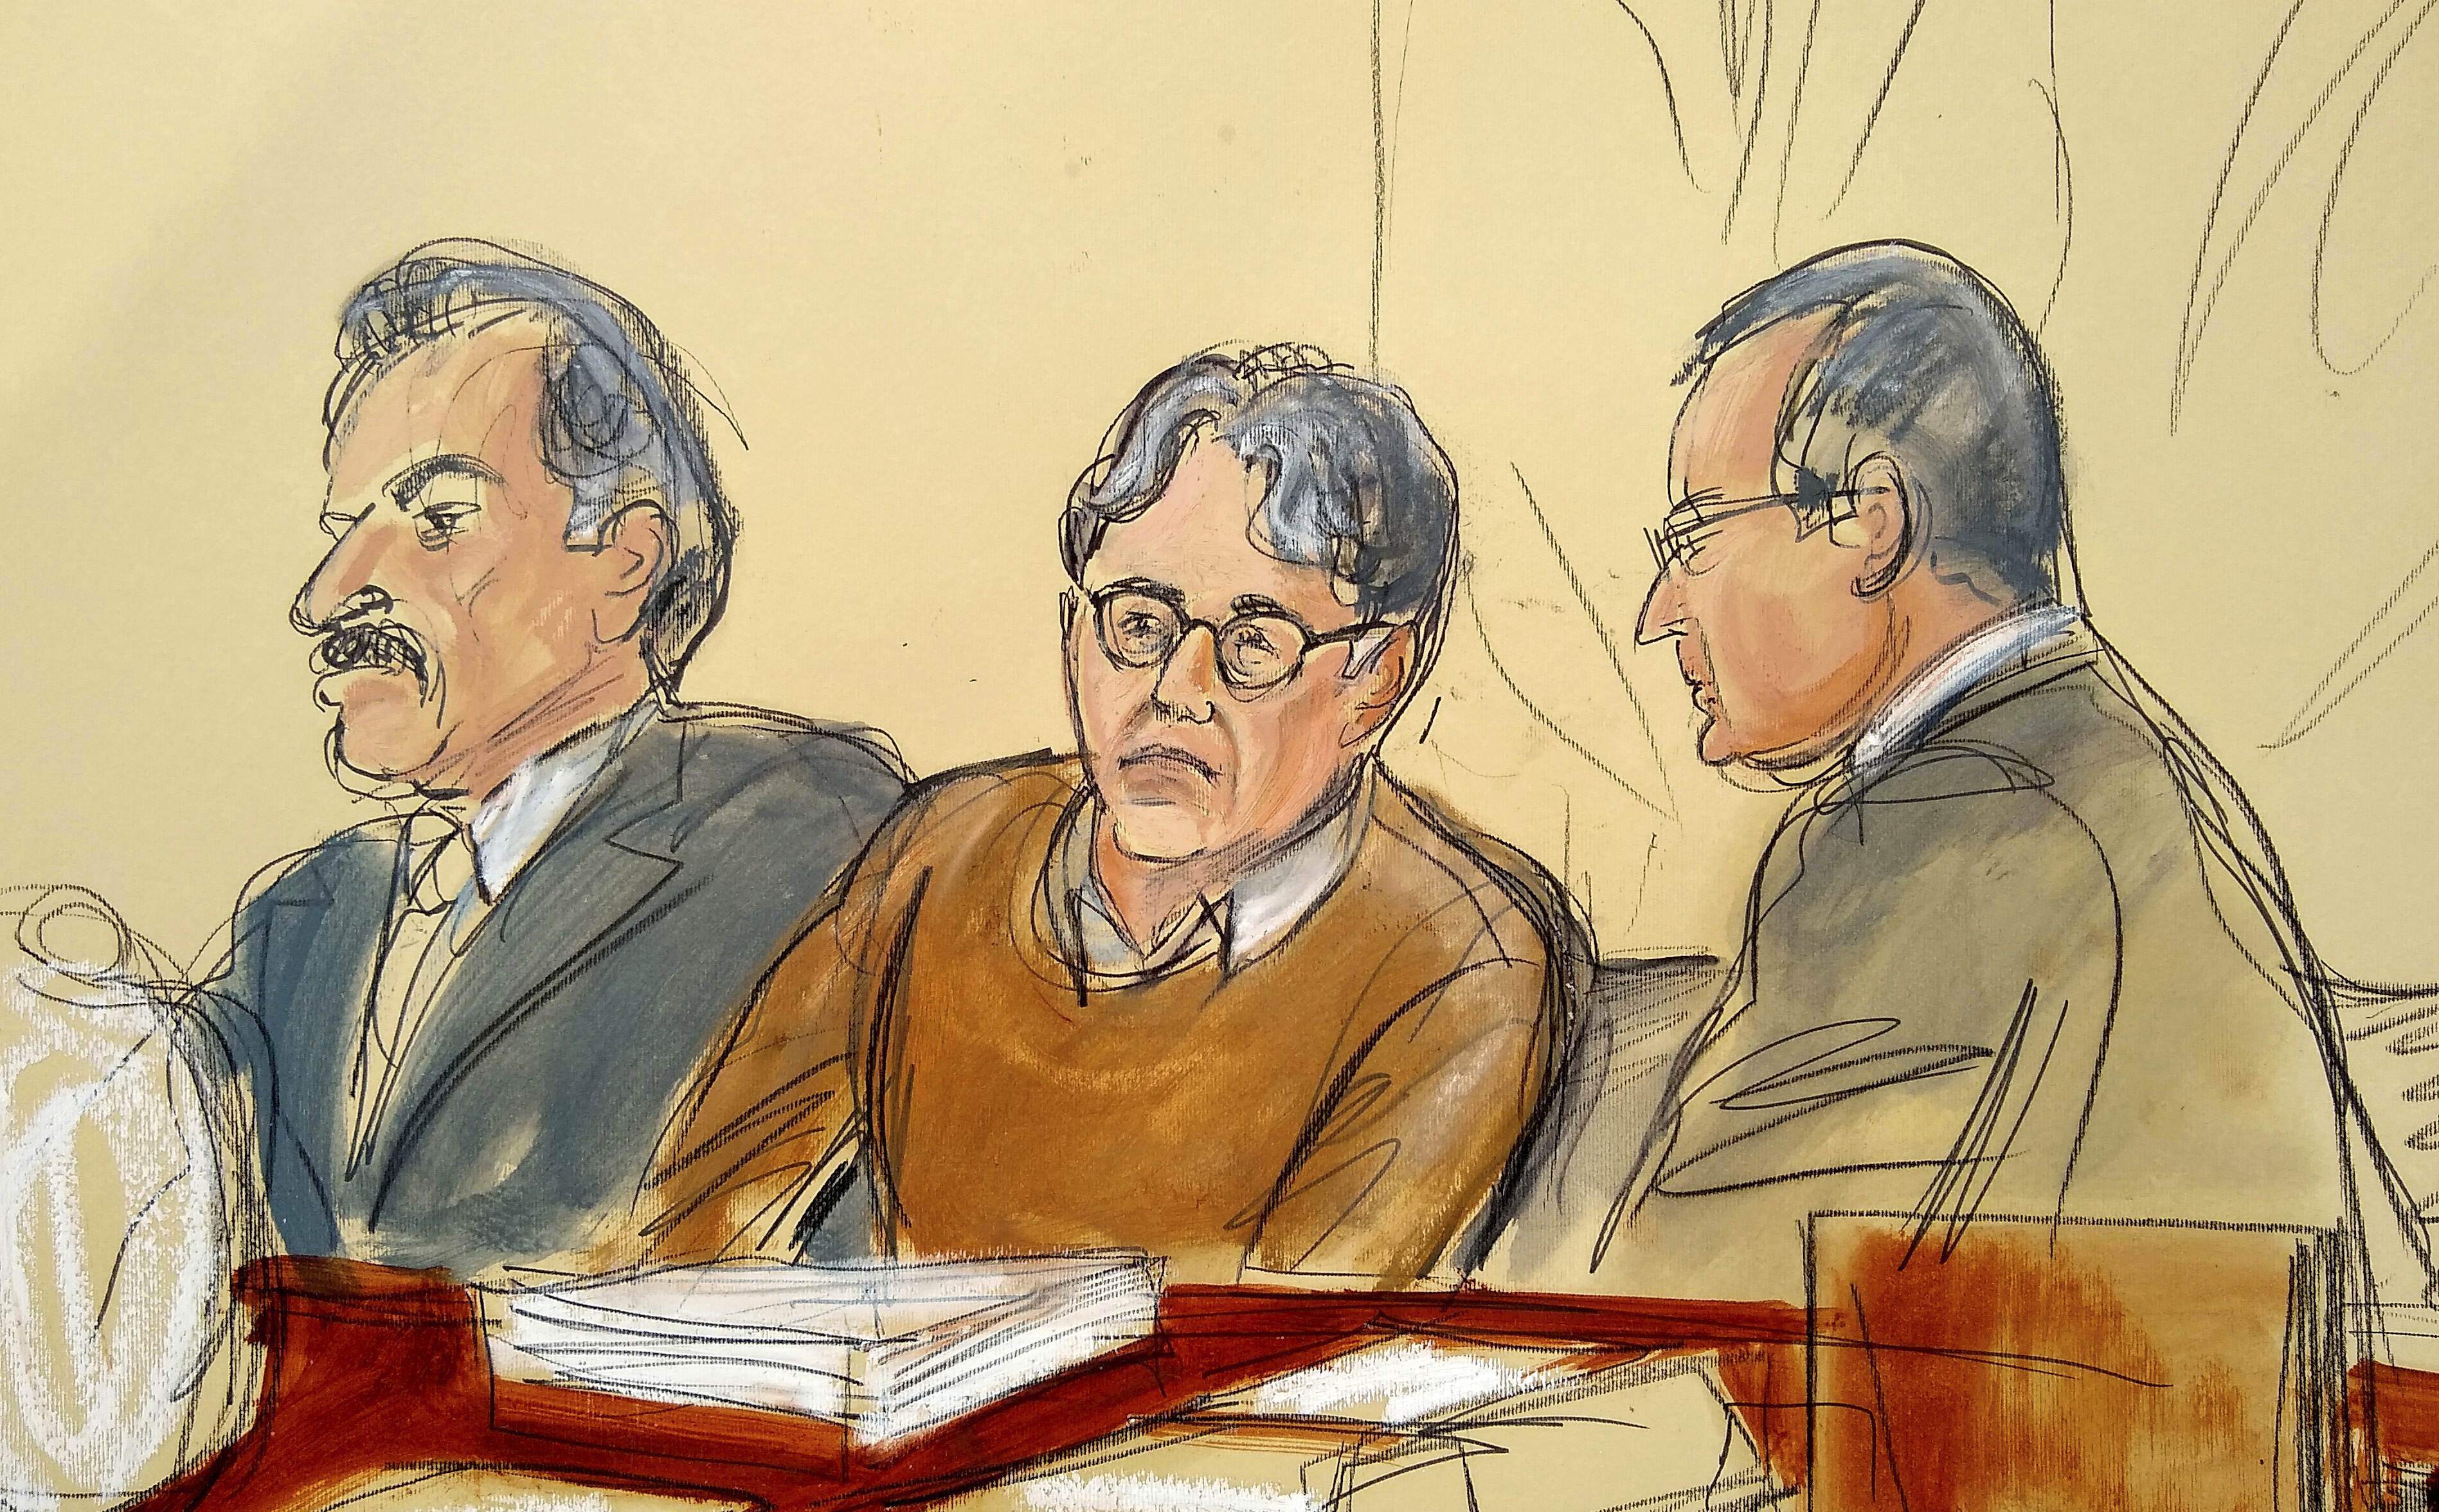 In this Tuesday, May 7, 2019, file courtroom drawing, defendant Keith Raniere, center, leader of the secretive group NXIVM, is seated between his attorneys Paul DerOhannesian, left, and Marc Agnifilo during the first day of his sex trafficking trial.